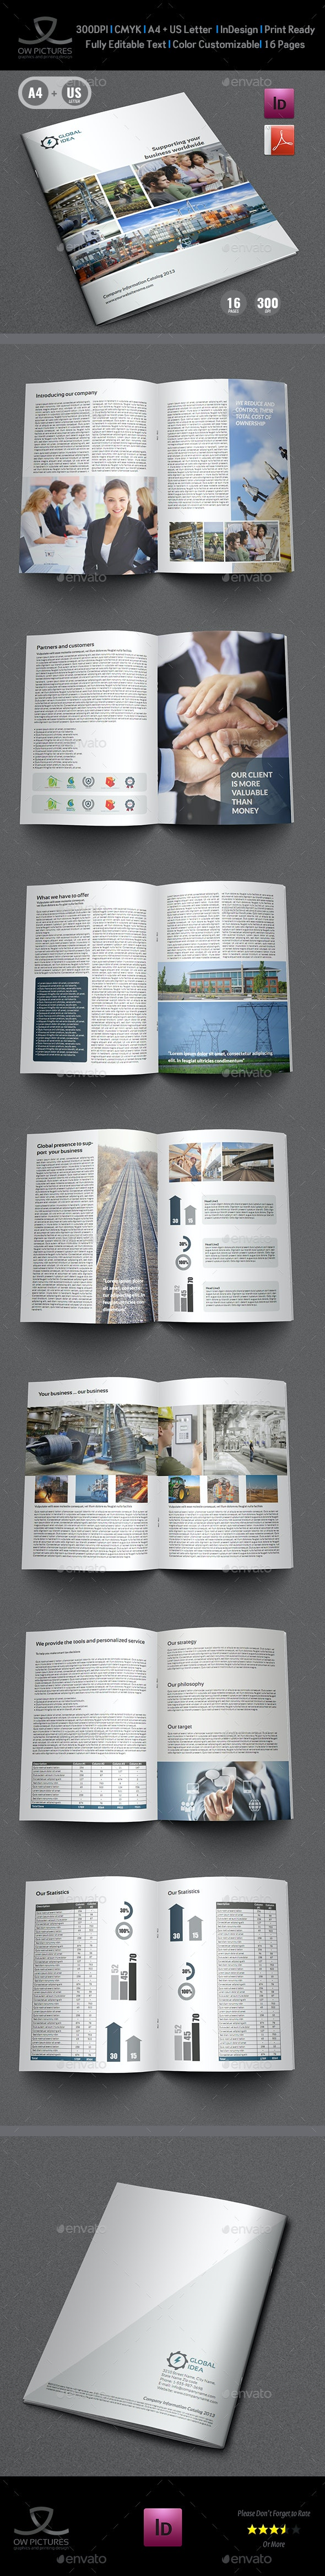 Company Profile Brochure Template Vol.5 -16 Pages - Corporate Brochures